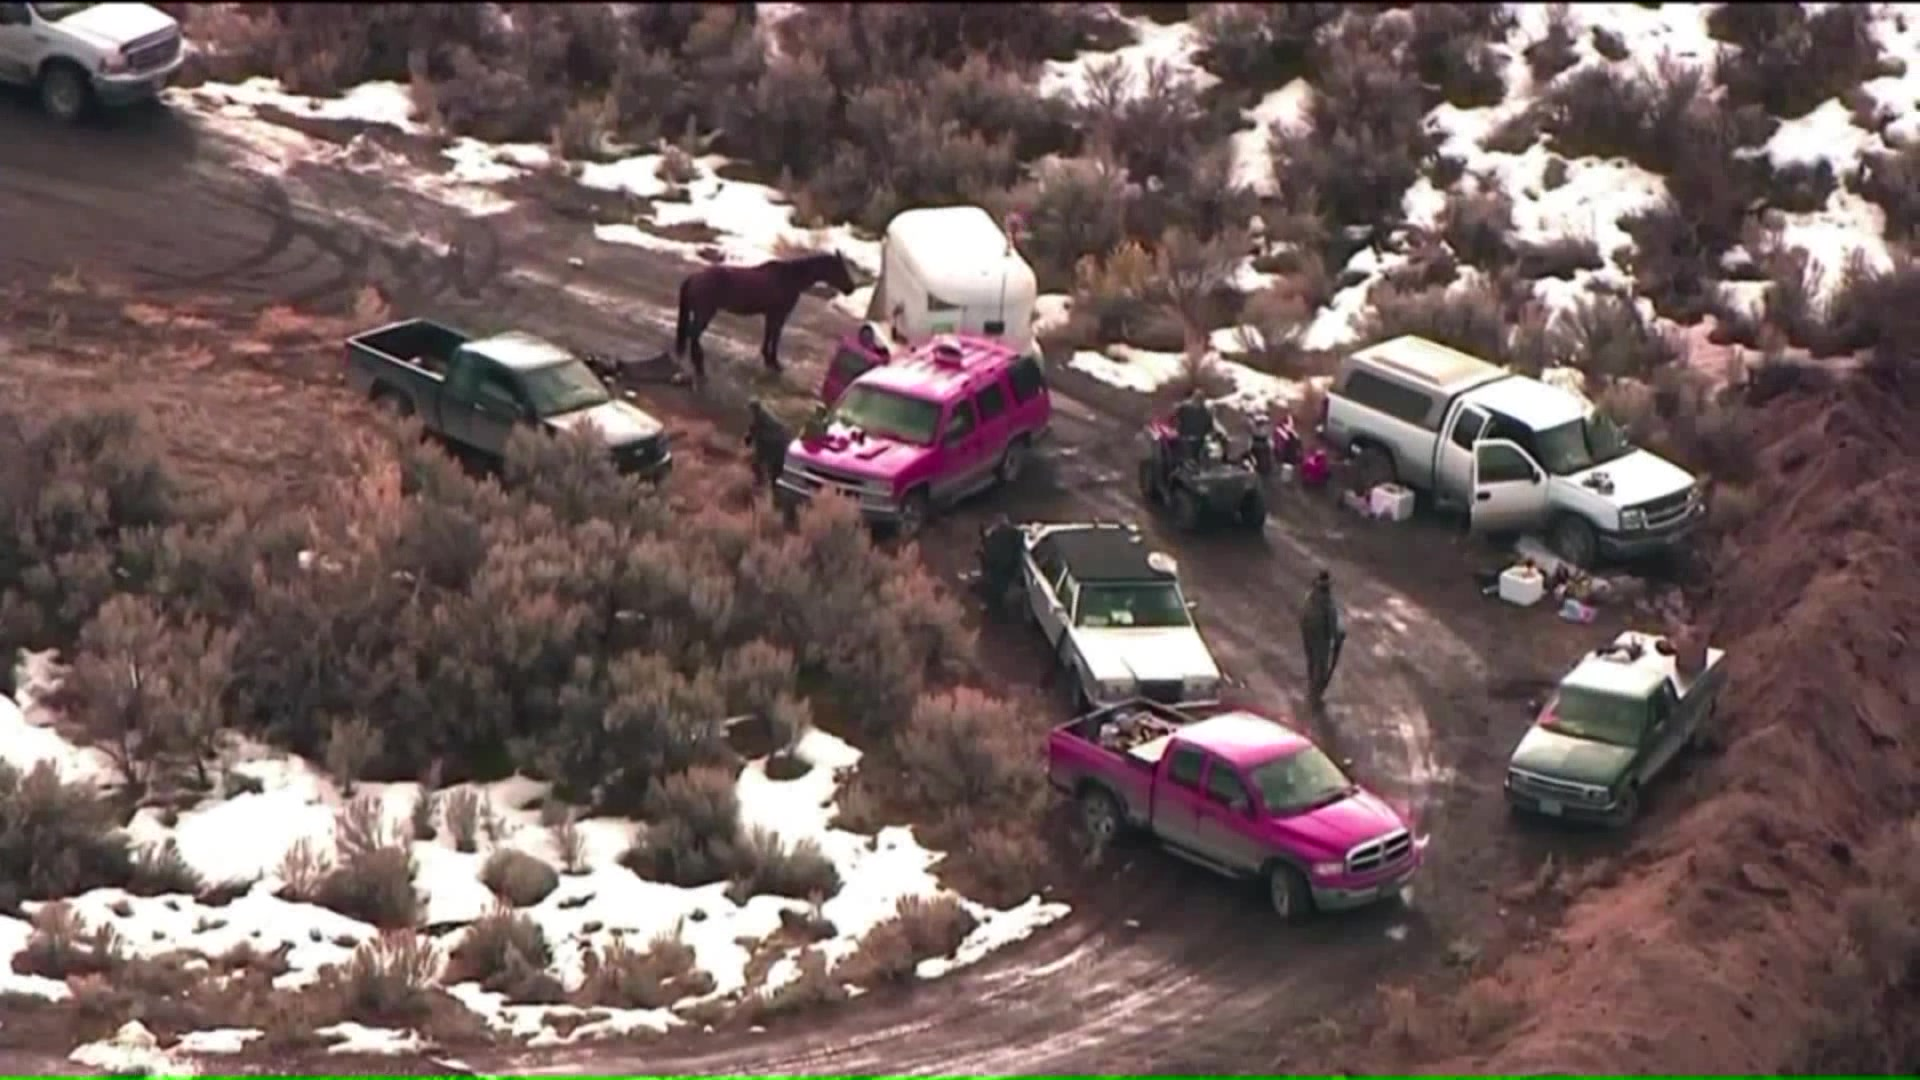 Last Militia Member Surrenders To End Oregon Standoff